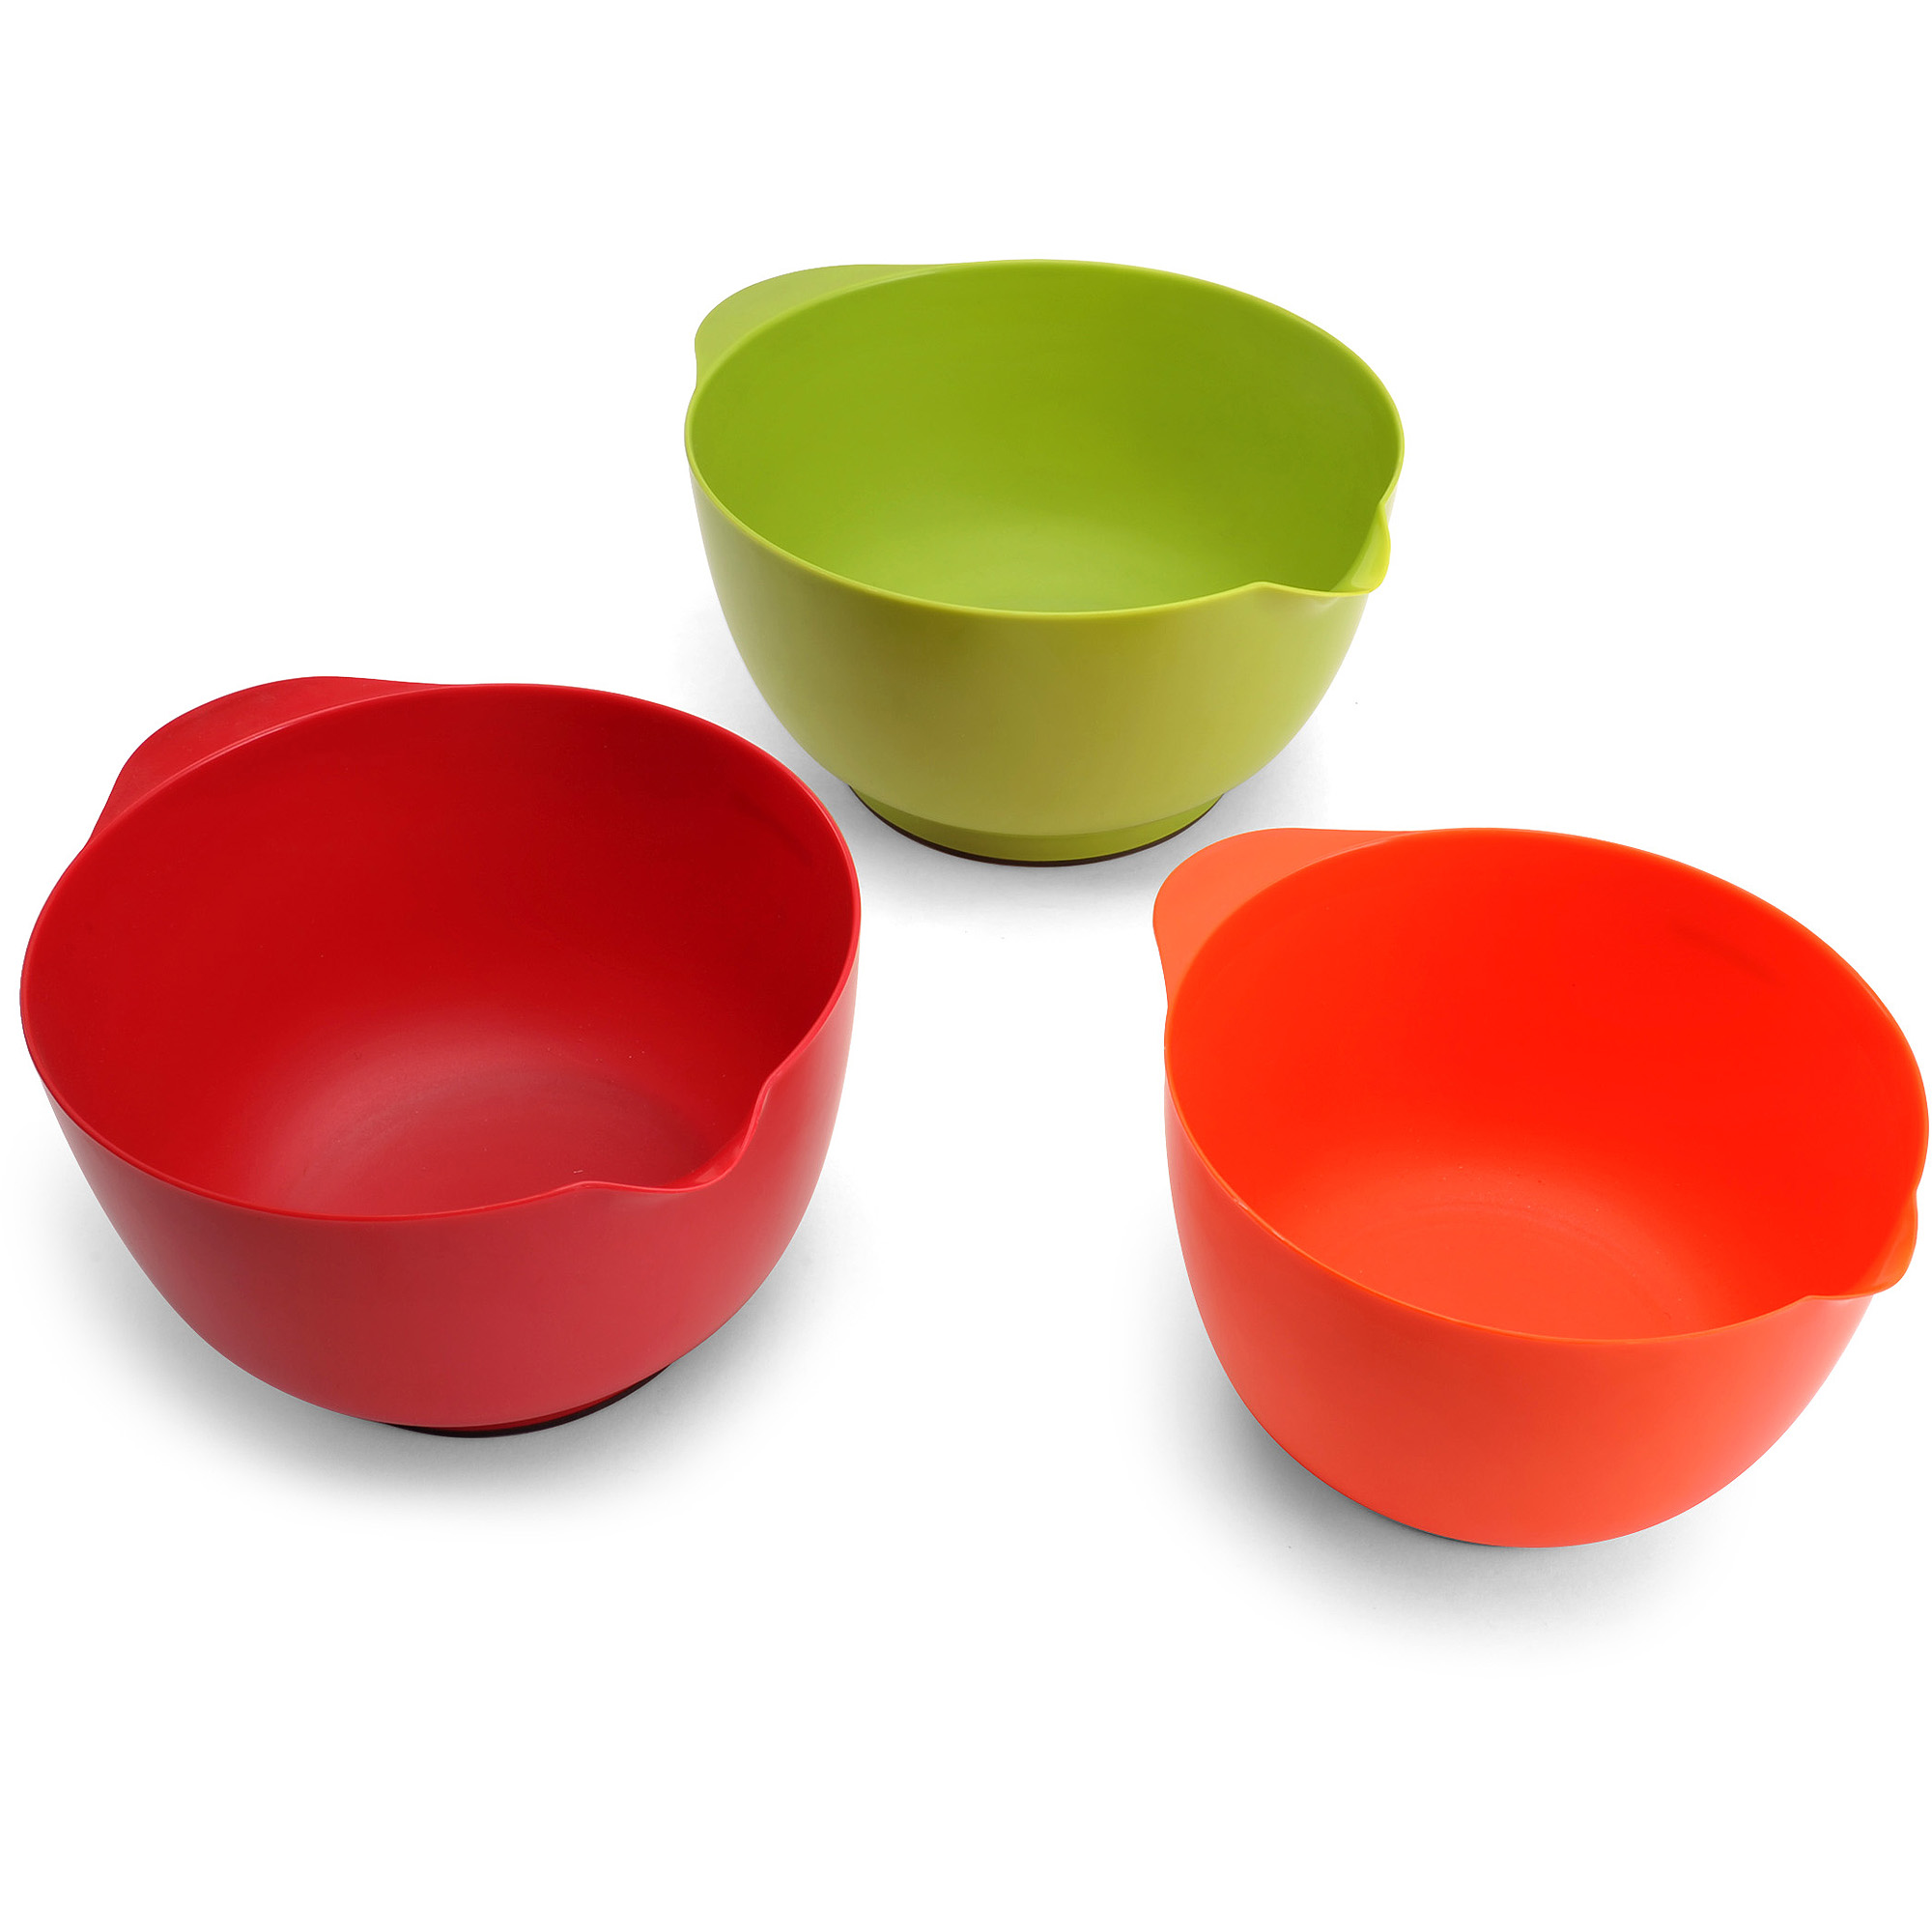 Farberware Set of 3 Mixing Bowls, Red, Green and Orange by Lifetime Brands, Inc.